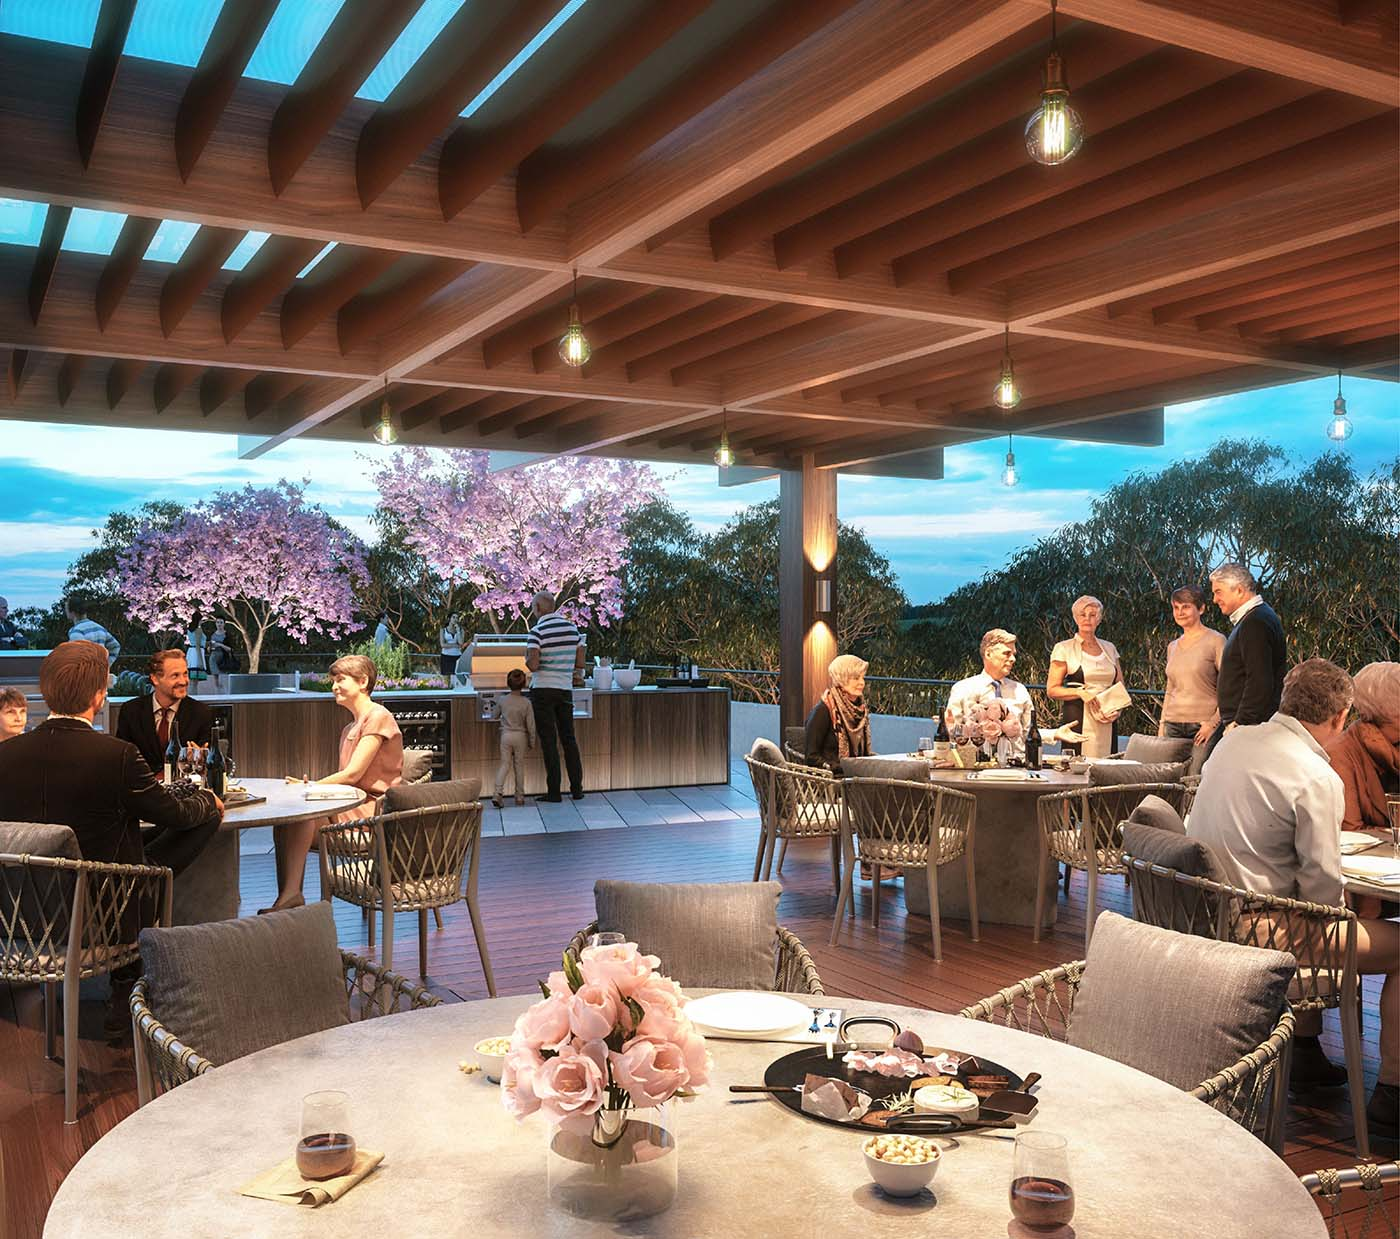 Terrace and dining area of a retirement village with people talking and eating.